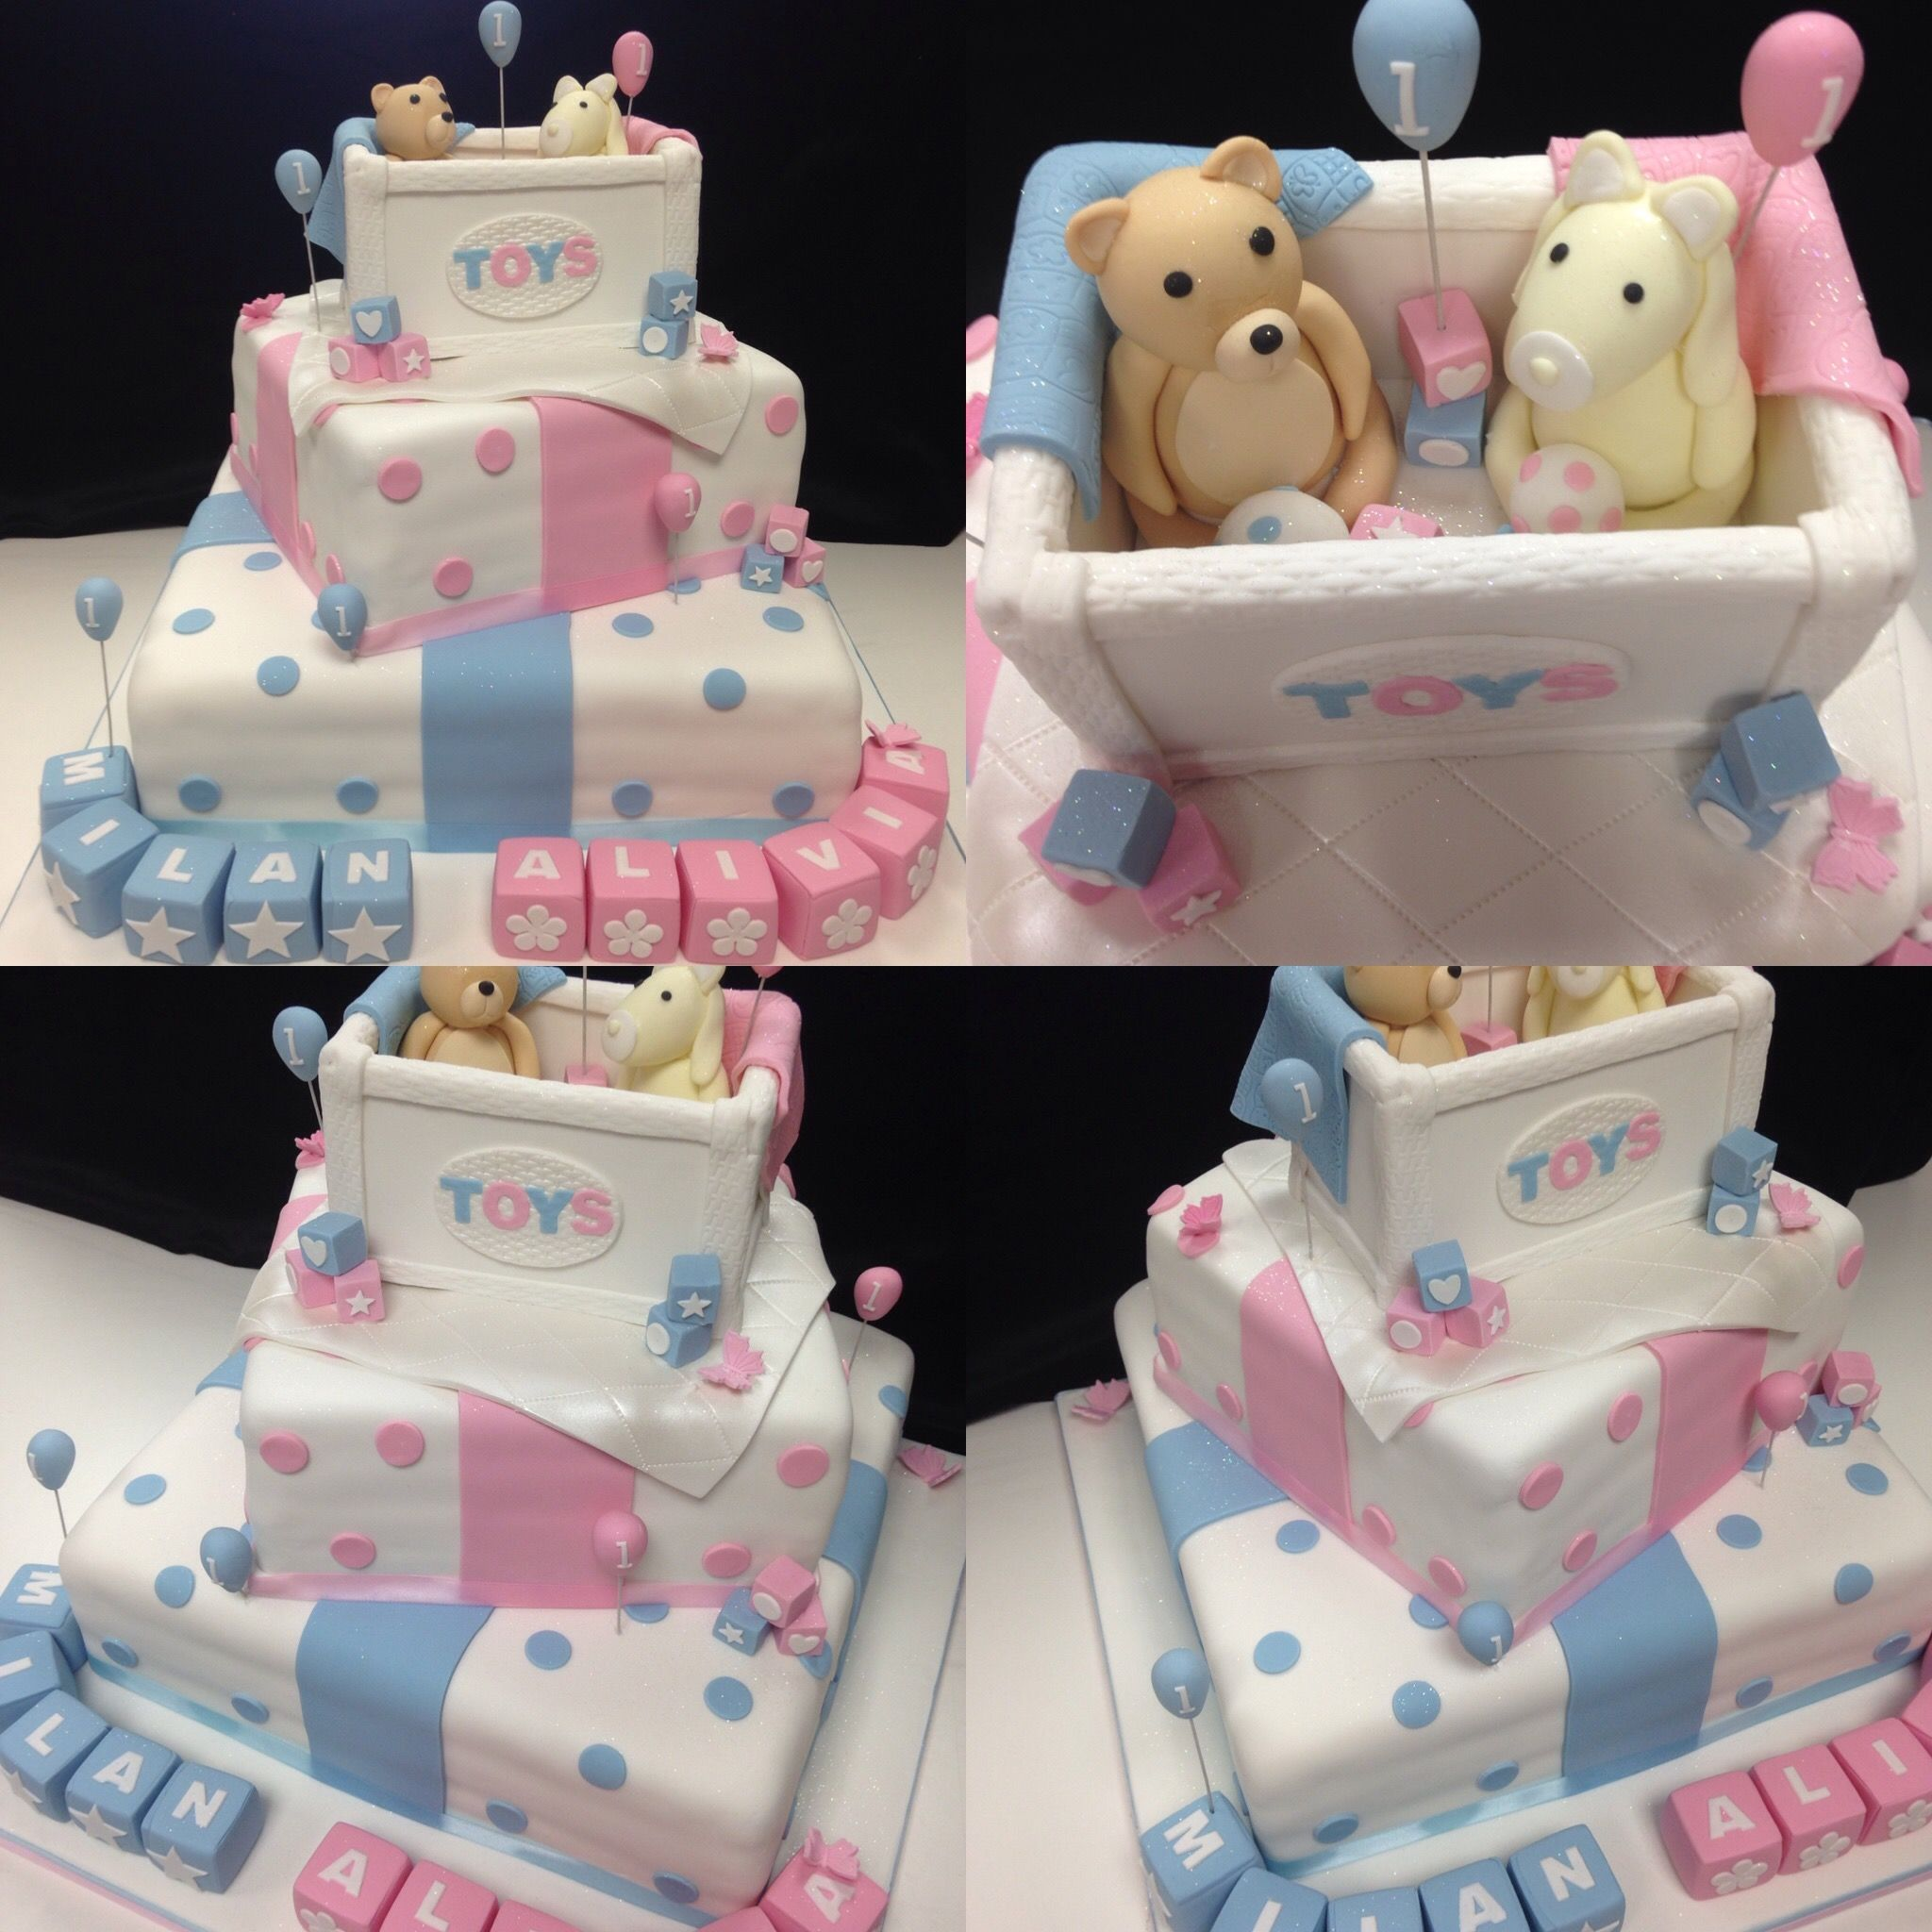 3 Tiered Birthday Cake Made For Twins Celebrating Their 1st Birthday